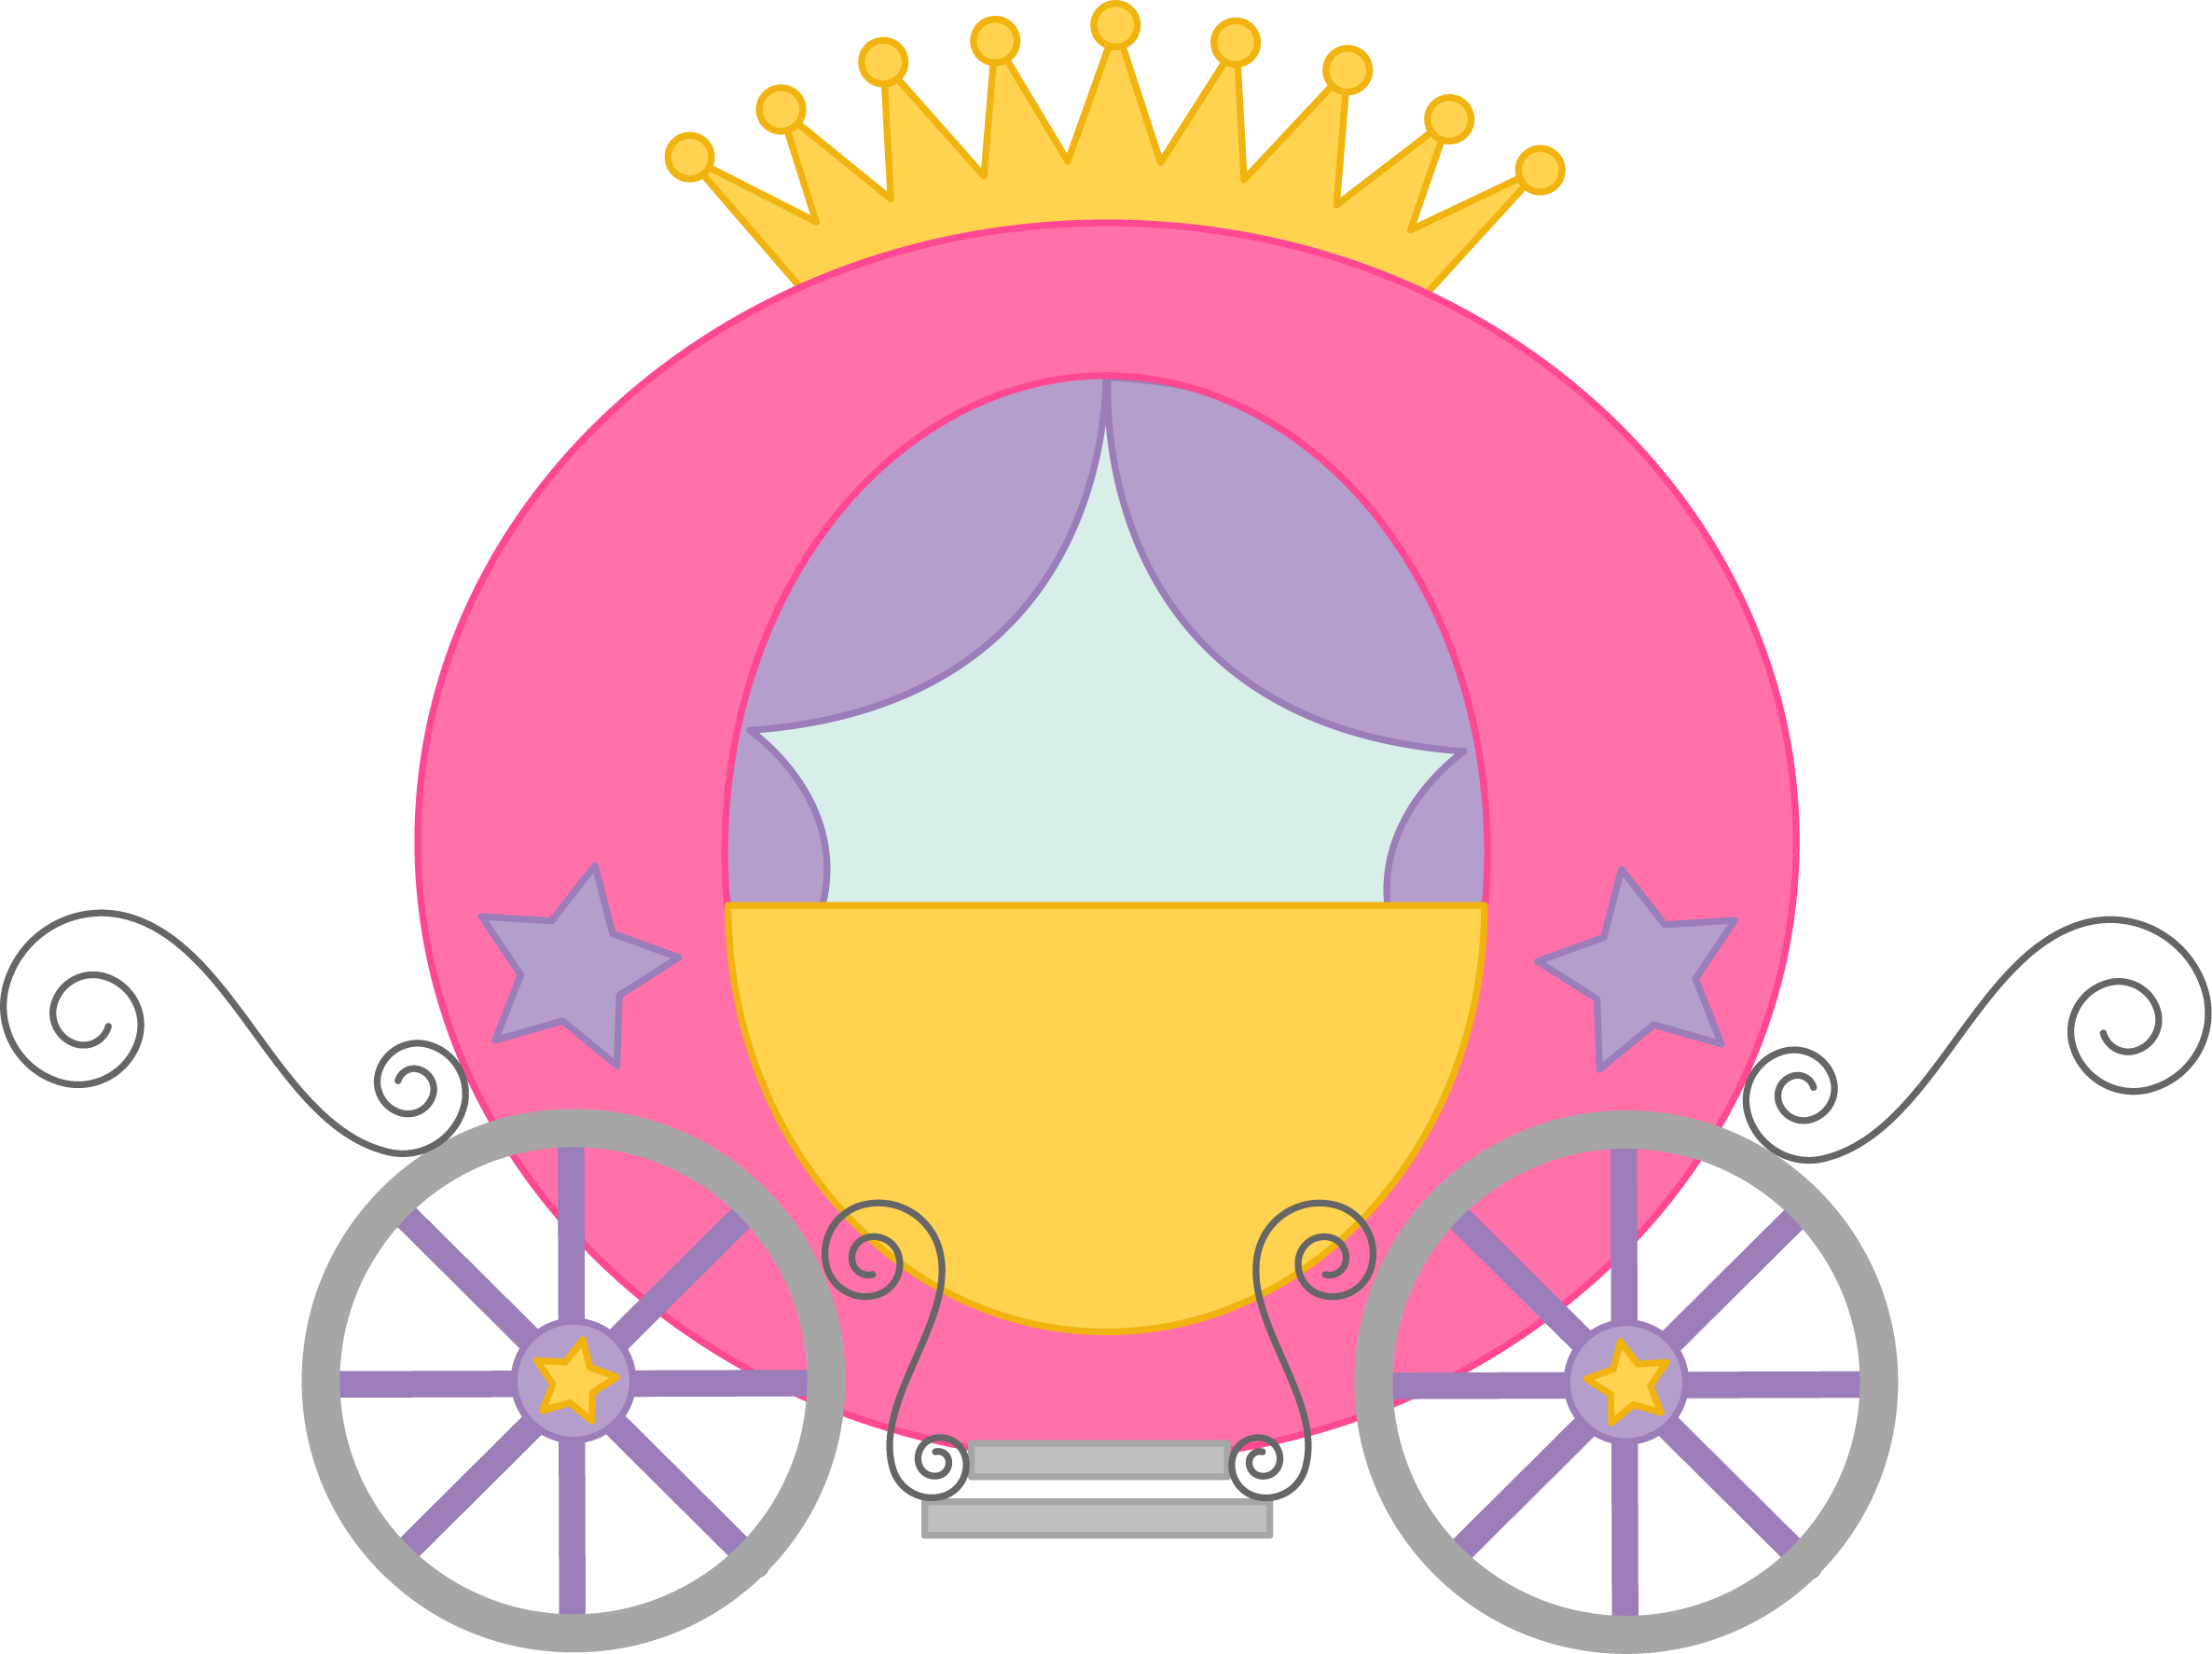 Princess aurora crown clipart picture royalty free stock Fairytale Princess Pictures - Cliparts.co | Princess cards ... picture royalty free stock